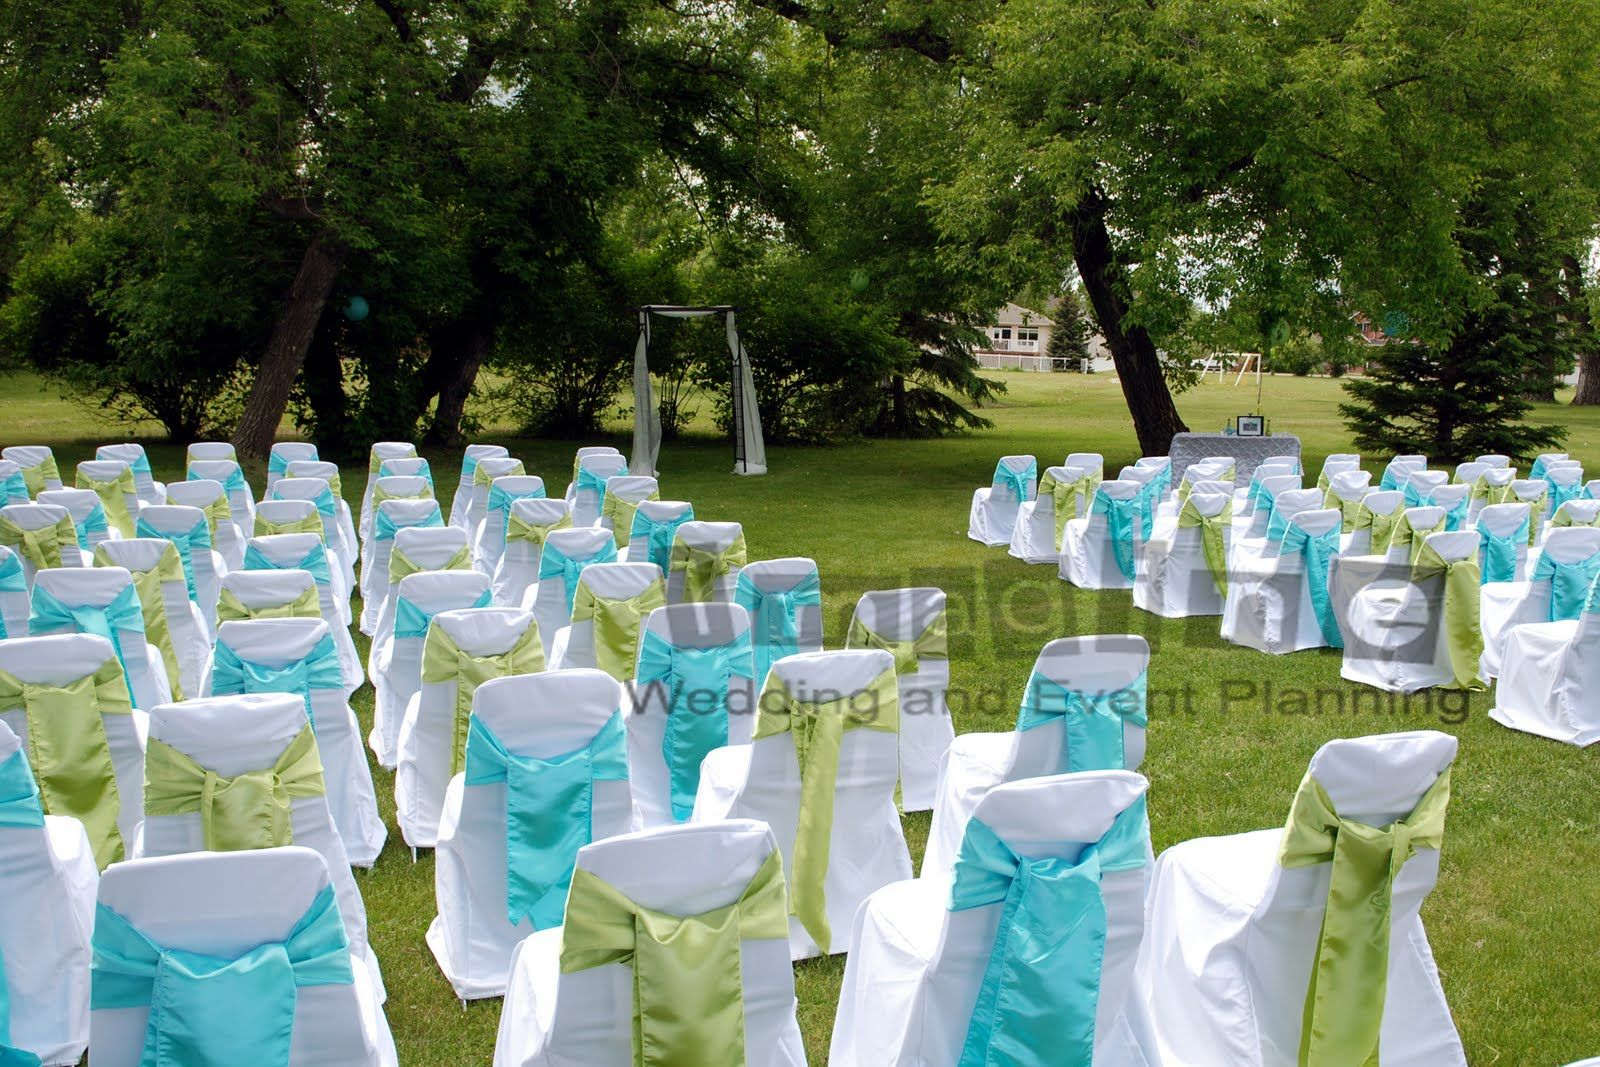 Lime Green And Turquoise Wedding Chair Covers Complete With Satin Aqua Sashes